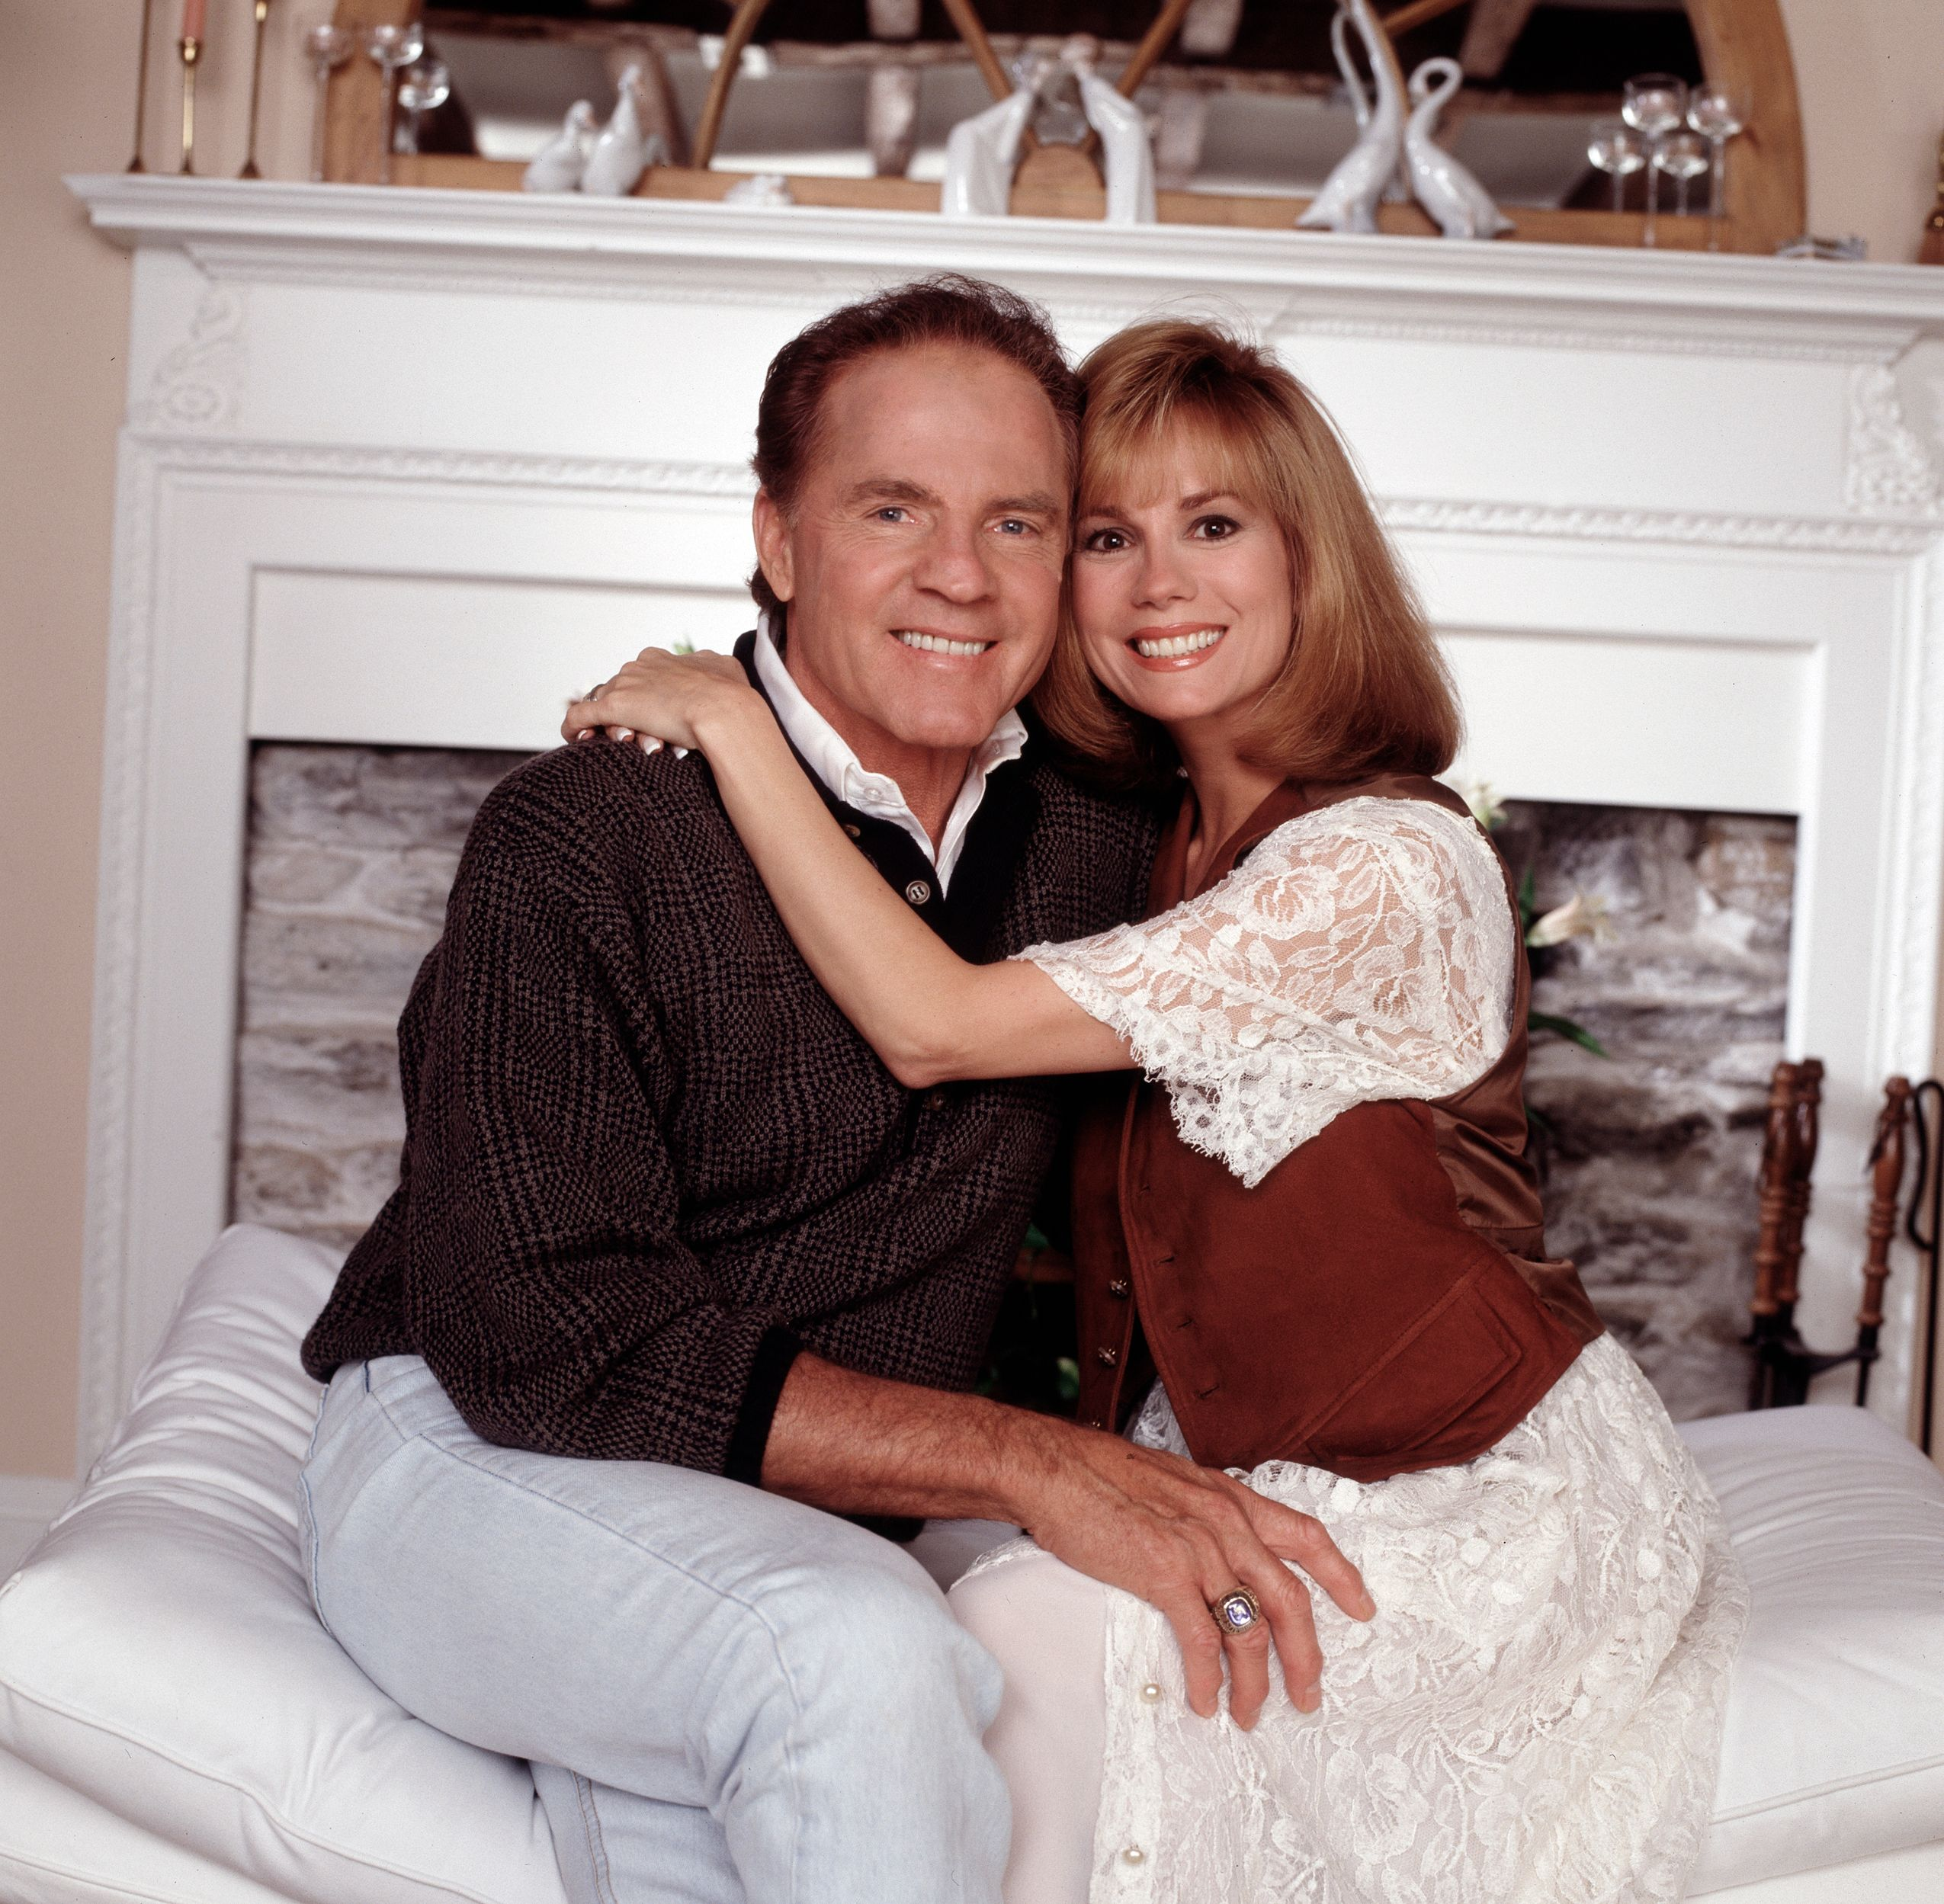 Frank and Kathie Lee Gifford for an Walt Disney Television interview with Barbara Walters, October 5, 1992. | Source: Getty Images